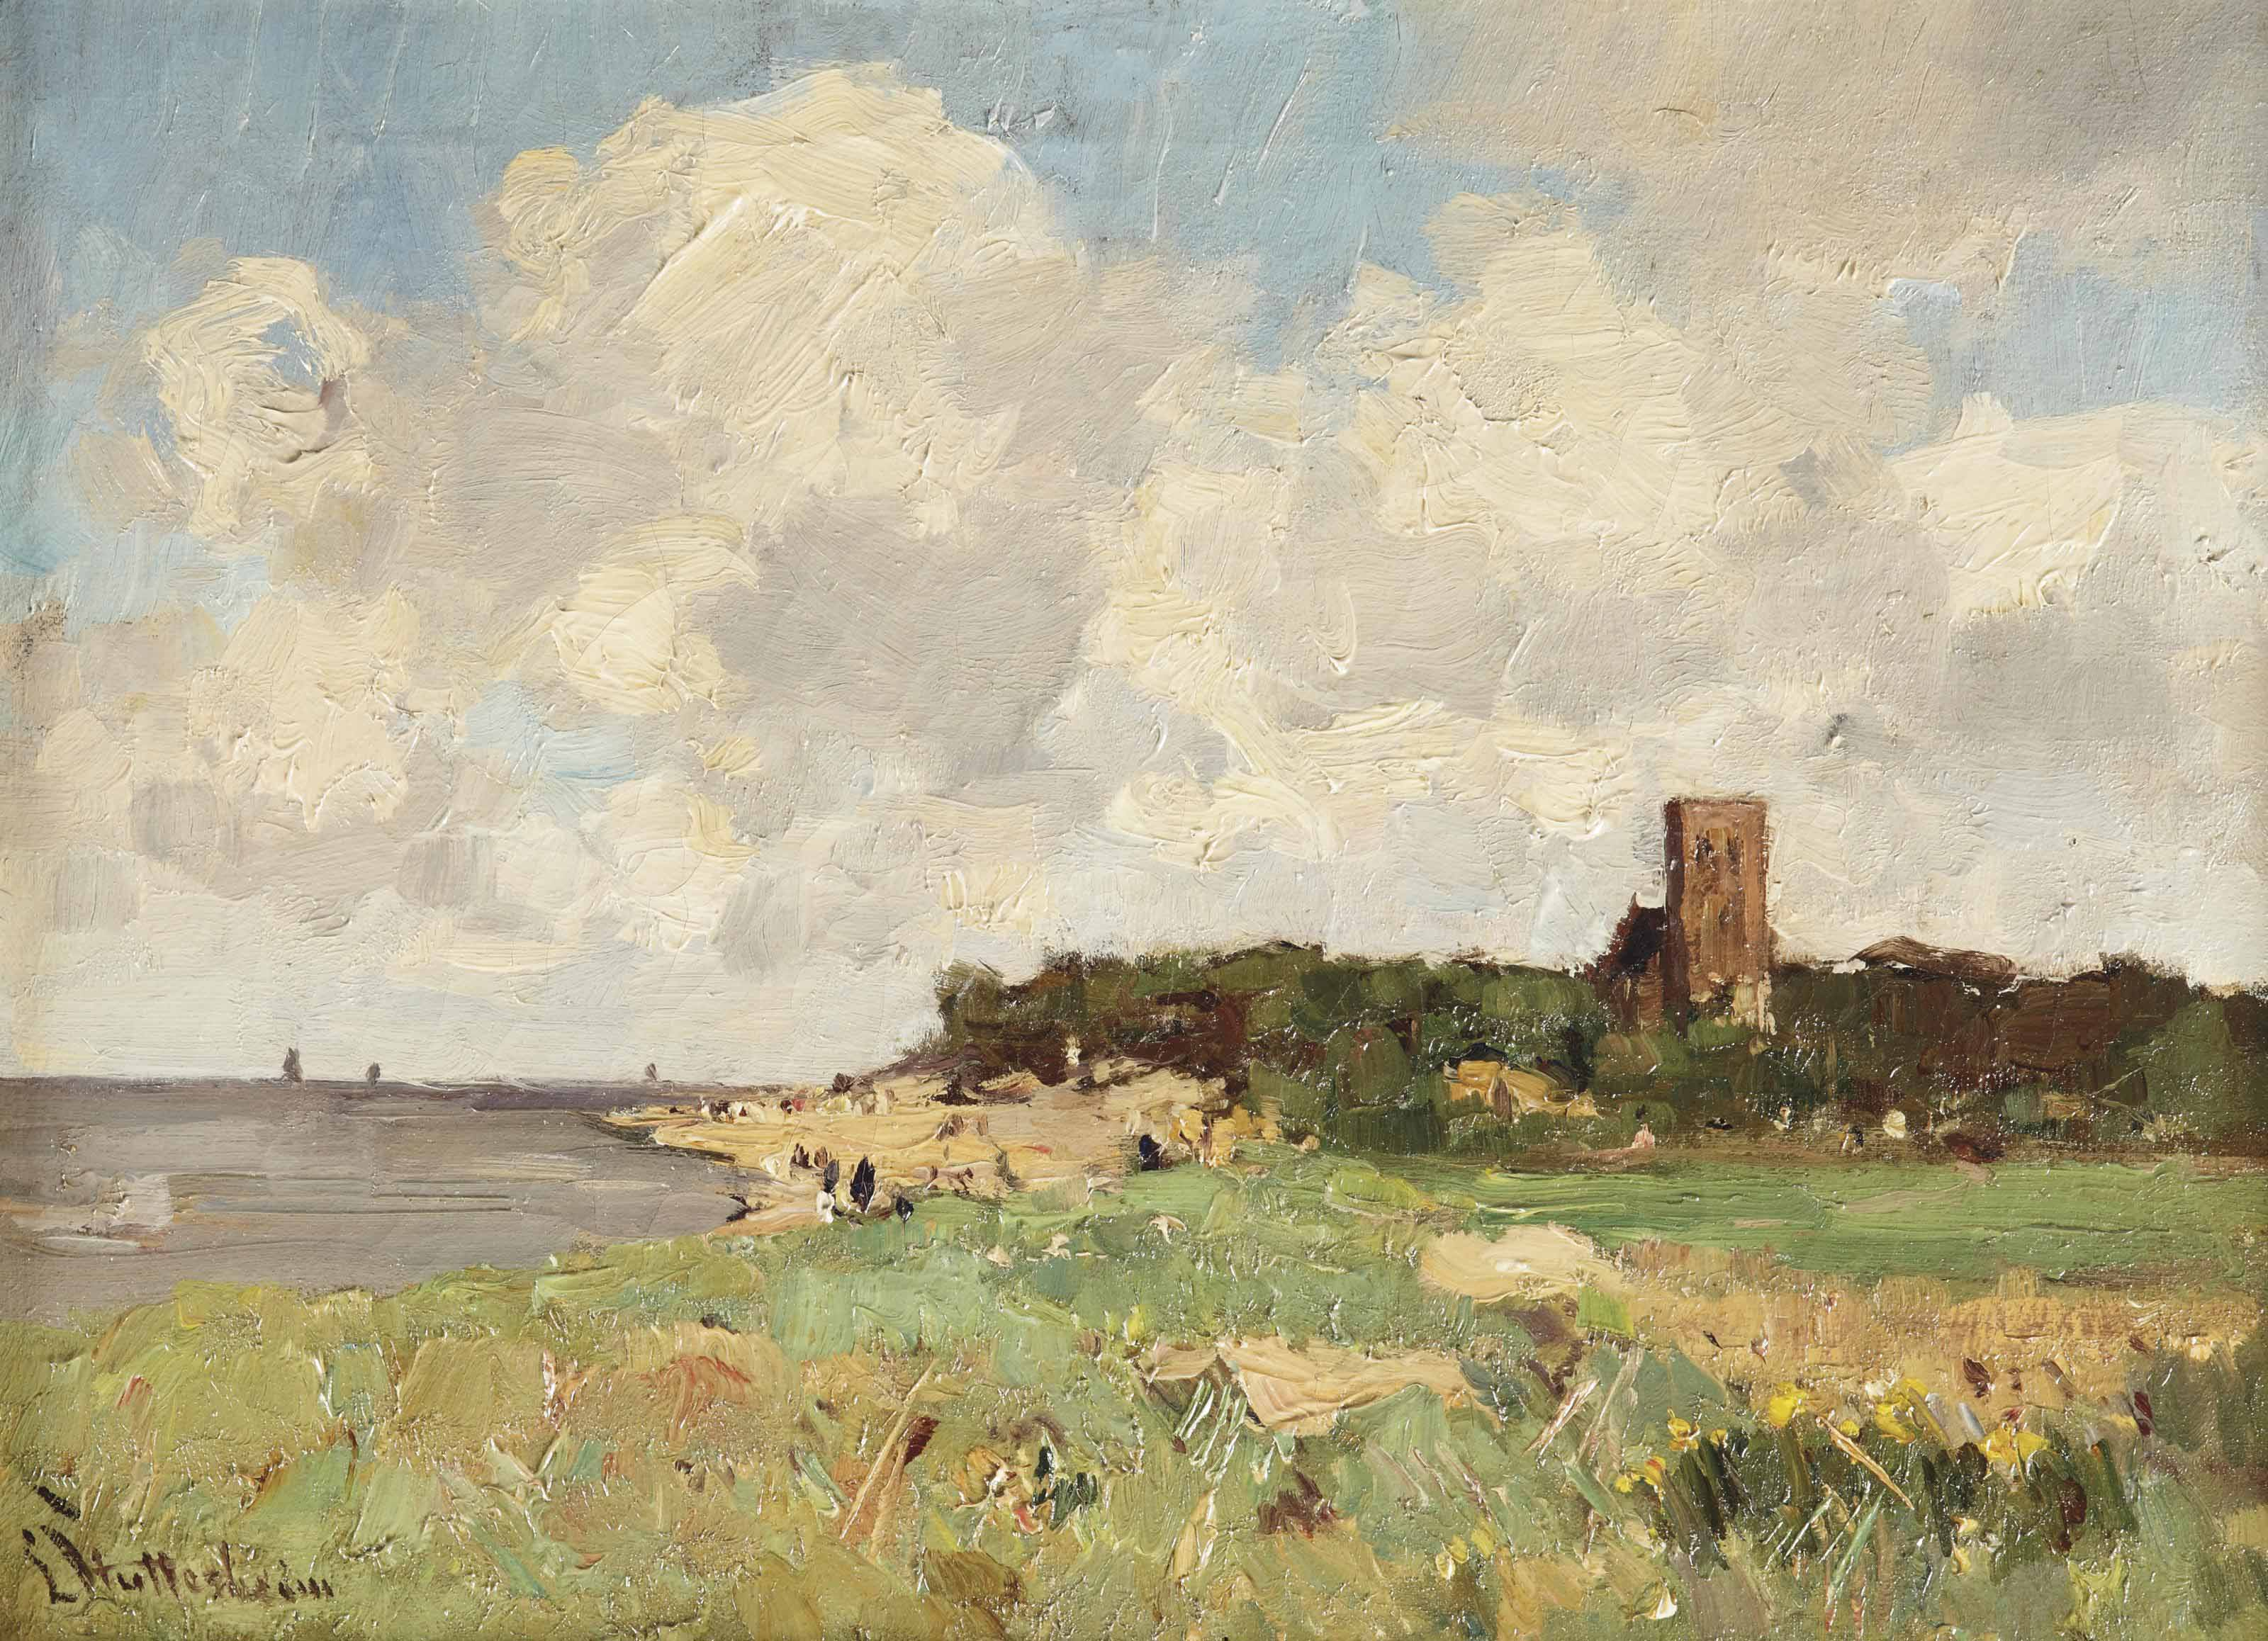 A view of former seaside resort Muiderberg by the Zuiderzee